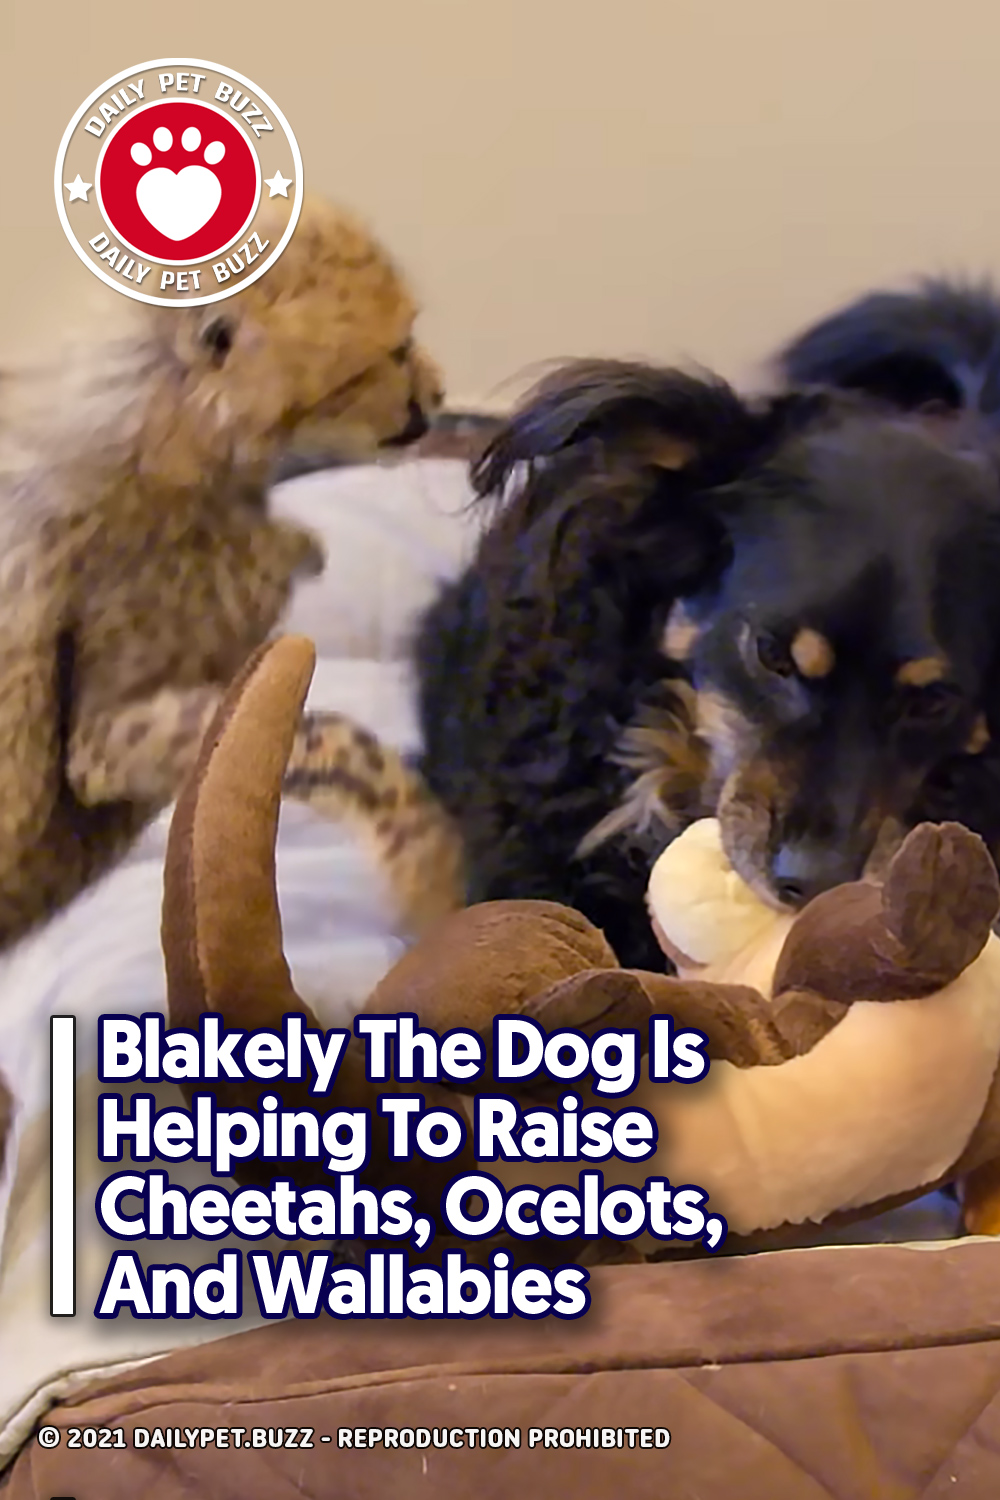 Blakely The Dog Is Helping To Raise Cheetahs, Ocelots, And Wallabies